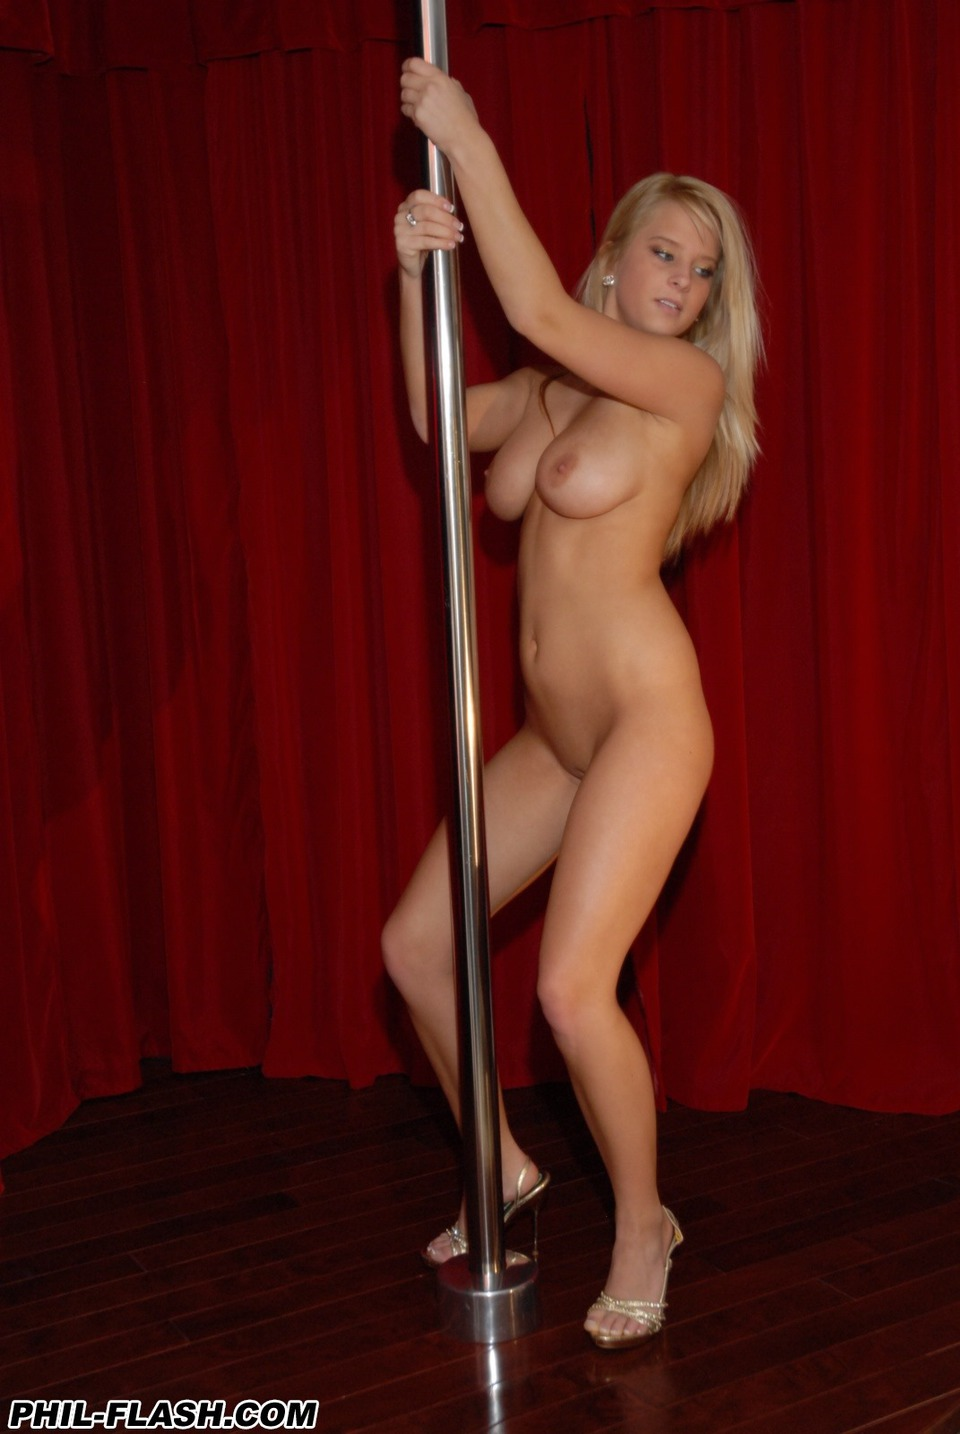 Apologise, Sexy nude pole dance opinion you